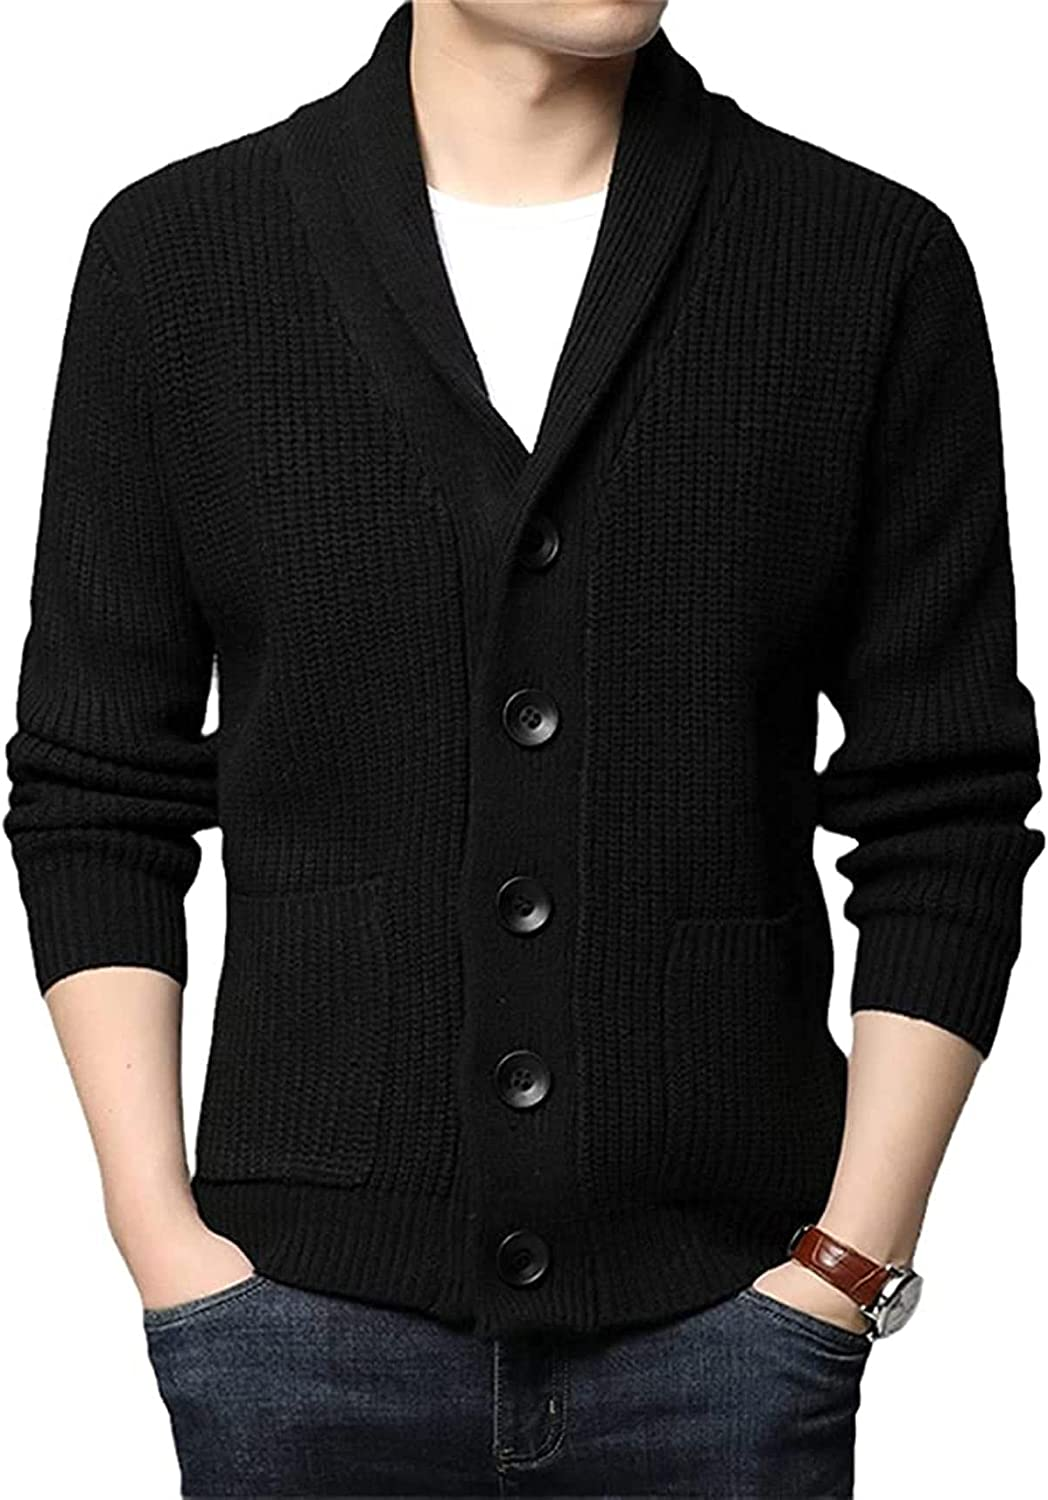 Wool Thick Autum Winter Cable Knit Sweater Jacket Men Coats Korean Clothing